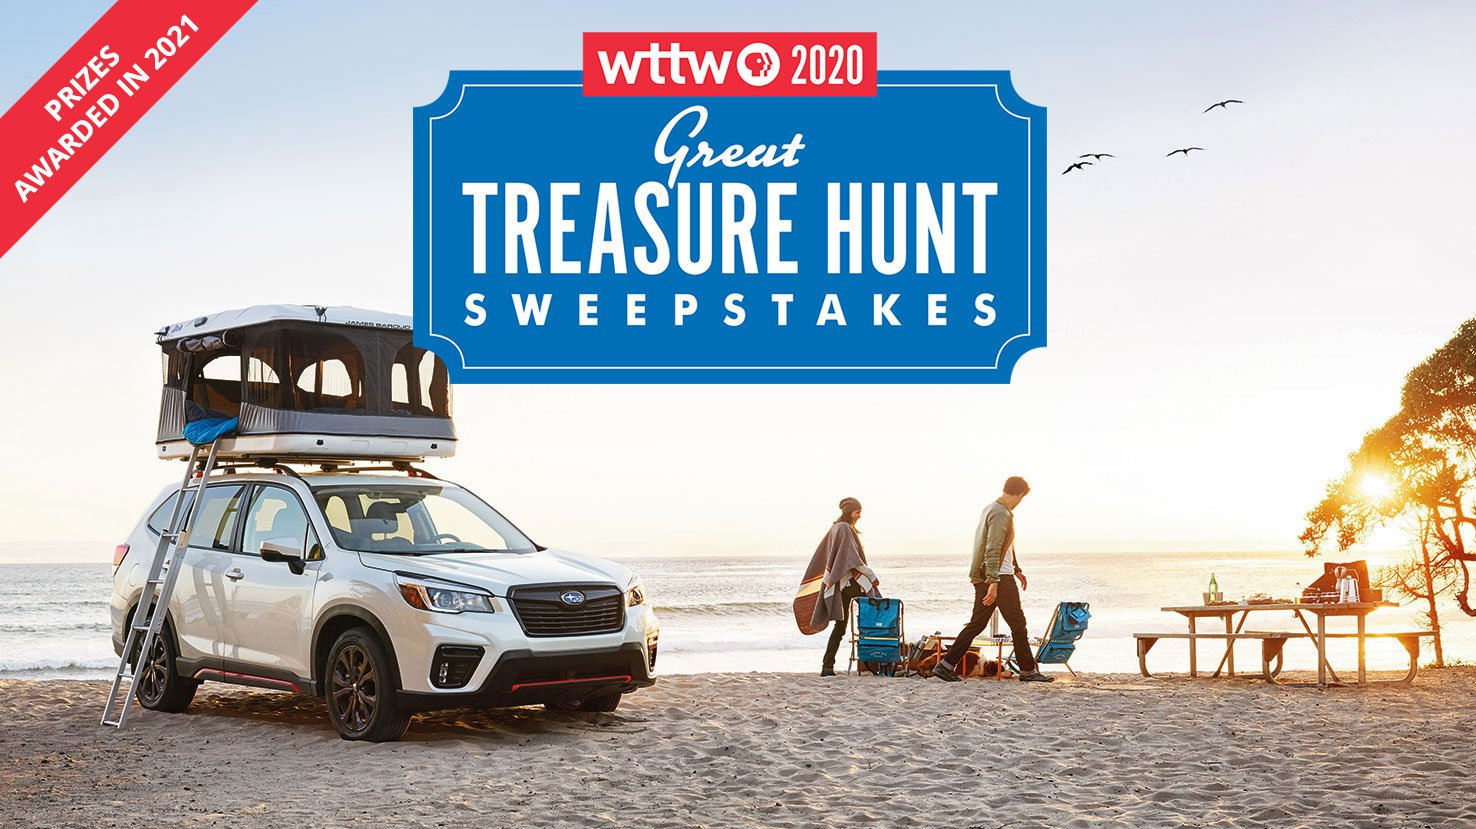 2020 WTTW Great Treasure Hunt Sweepstakes